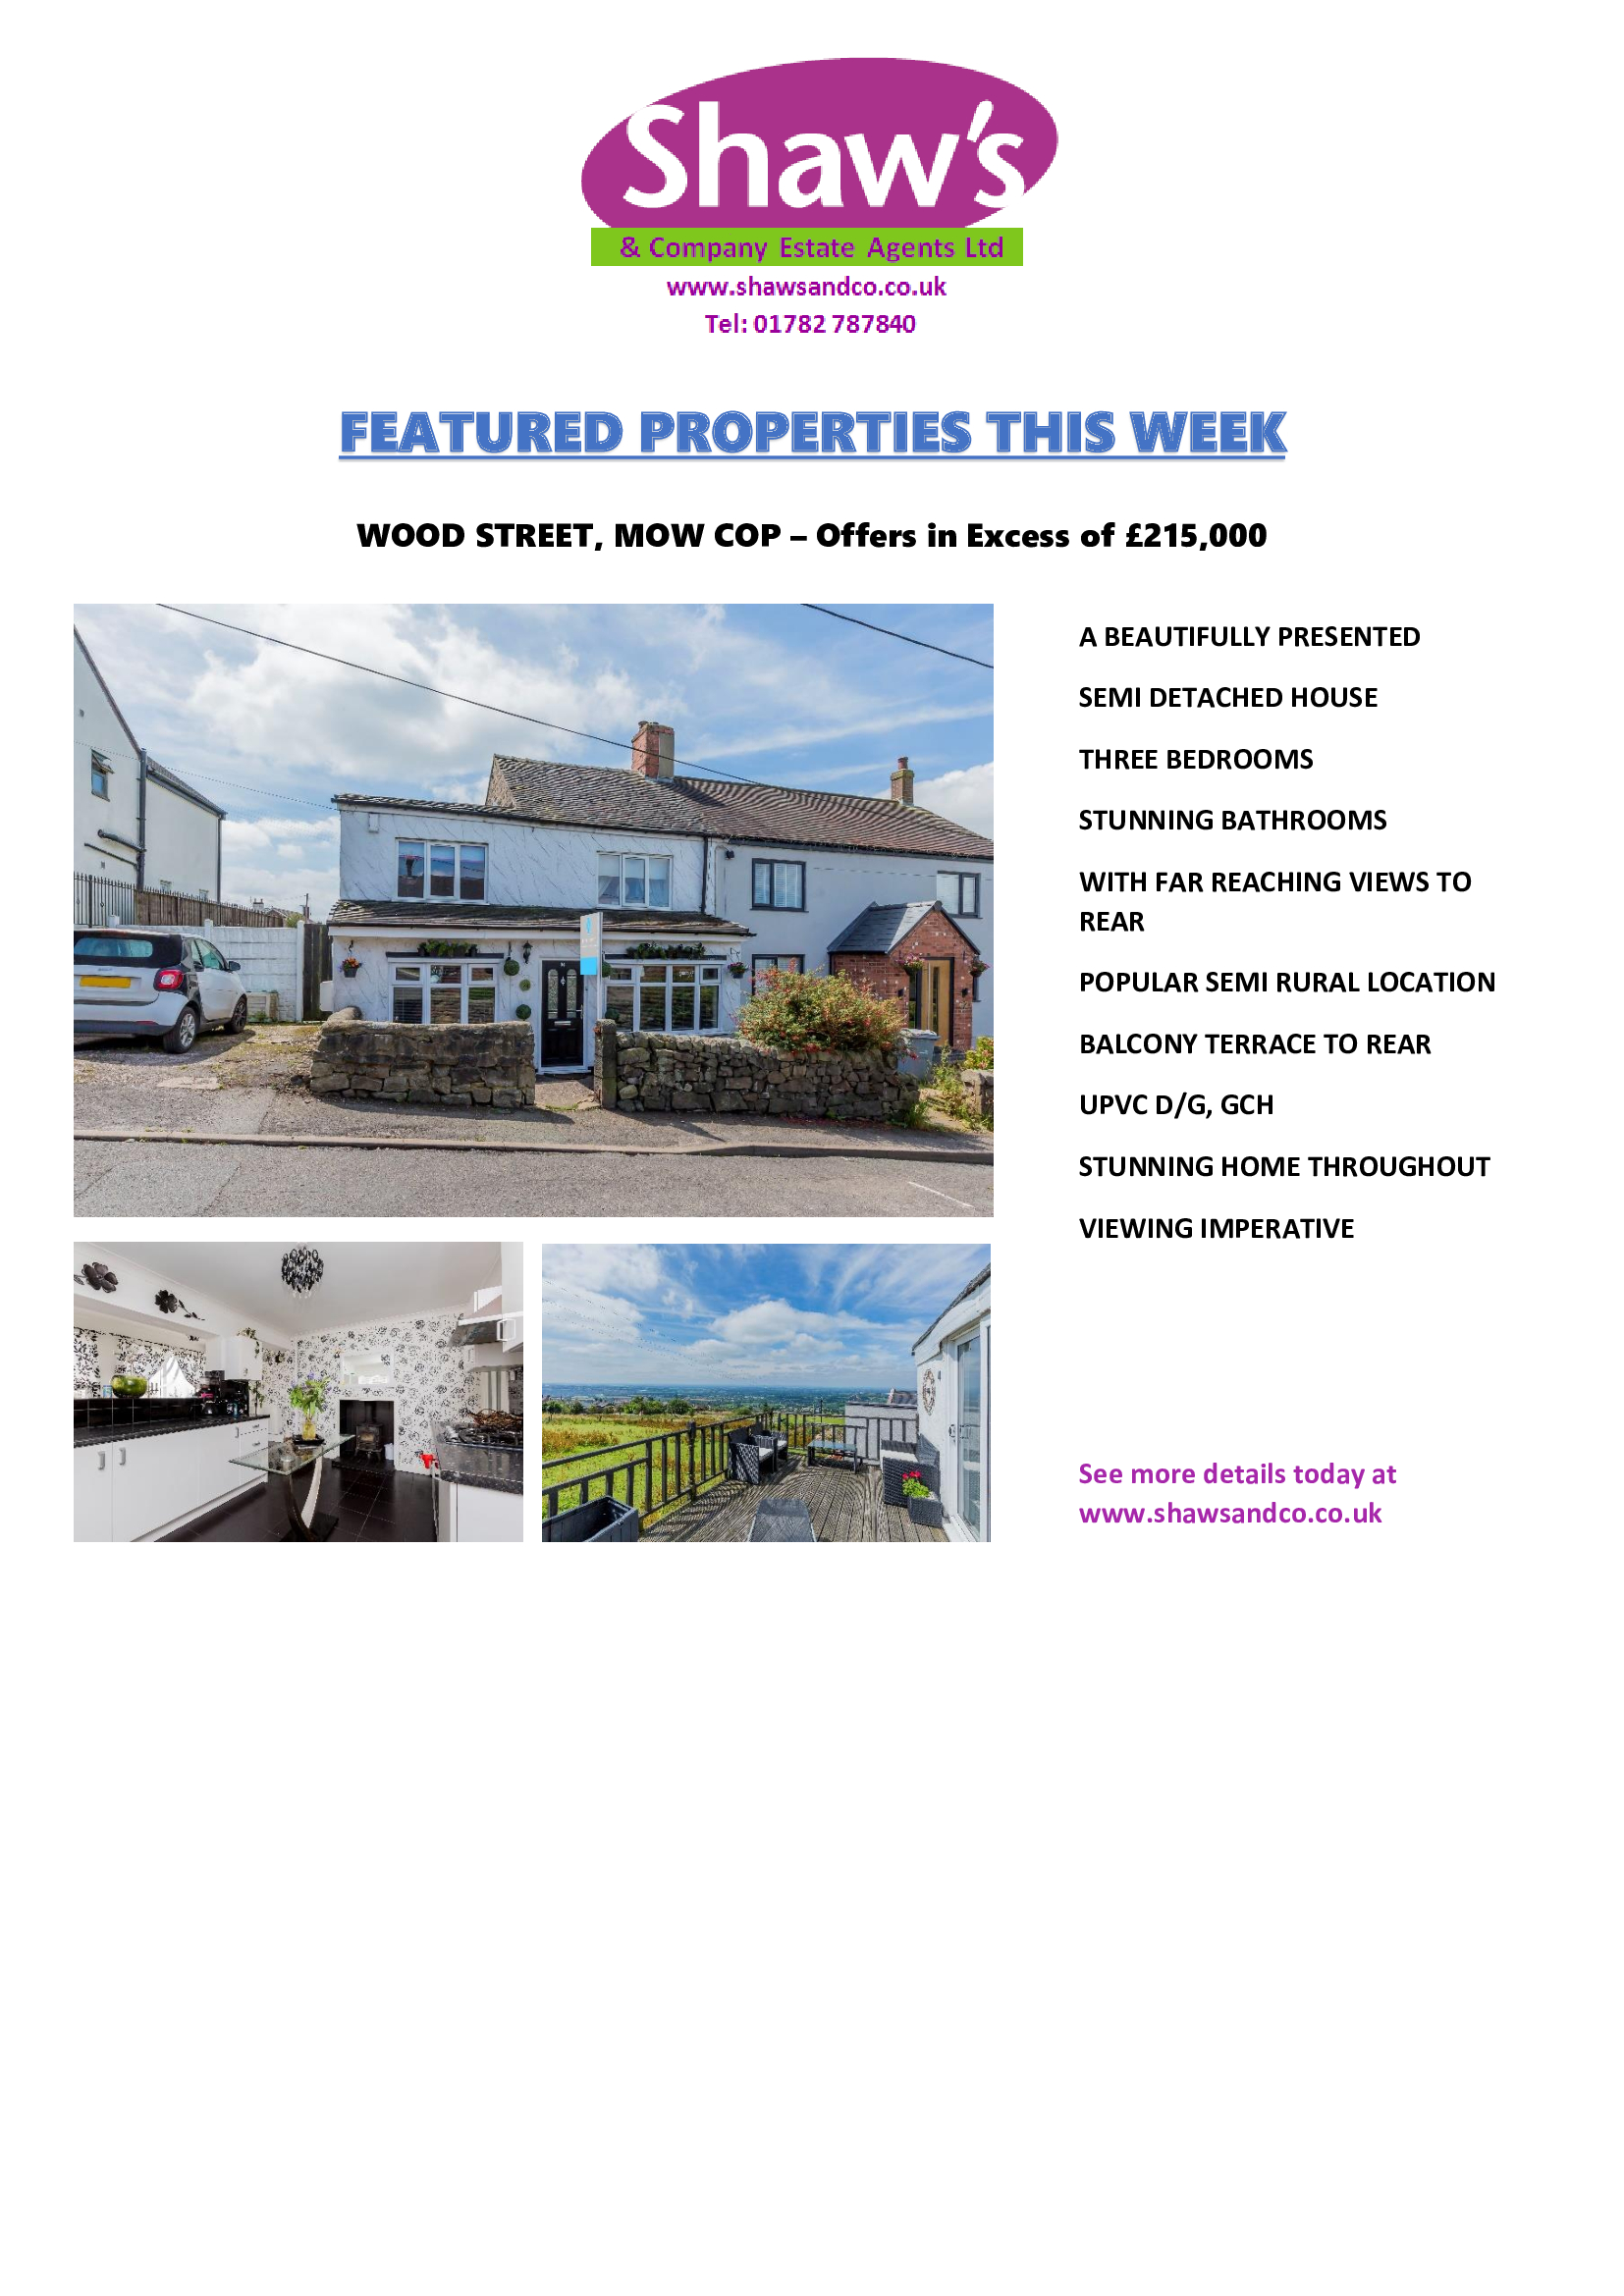 SHAW'S & CO - FEATURED PROPERTIES THIS WEEK